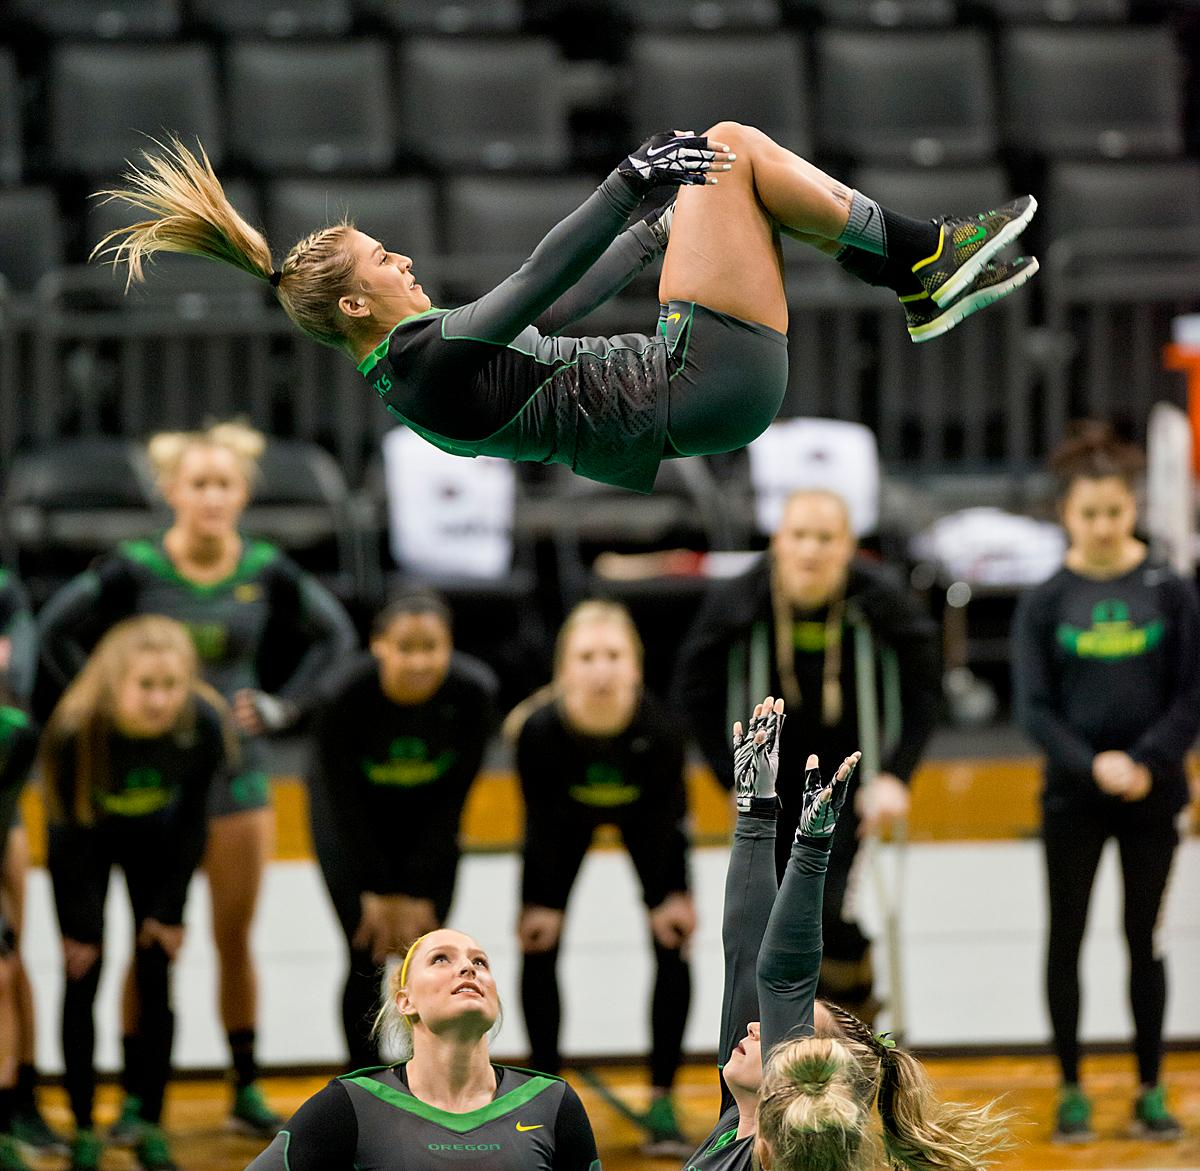 At their last home meet of the year and on Senior Night, the Ducks Acro and Tumbling Team defeated the Azusa Pacific Cougars, winning in all six categories: 38.70 to 37.20 in Compulsory; 29.35 to 28.60 in Acro; 29.40 to 29.35 in Pyramid; 29.35 to 28.95 in Toss; 57.525 to 66.15 in Tumbling; 103.75 to 98.03 in Team Routine; for an overall total of 288.08 to 277.28. The Ducks finished the season 6-1 and will next compete in the NCATA National Championship at Azusa, California, April 27-29. Photo by Dan Morrison, Oregon News Lab